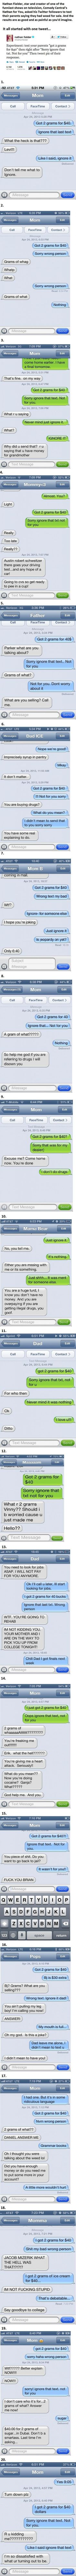 Kids Send Fake Texts To Parents... Their Responses Hilarious!